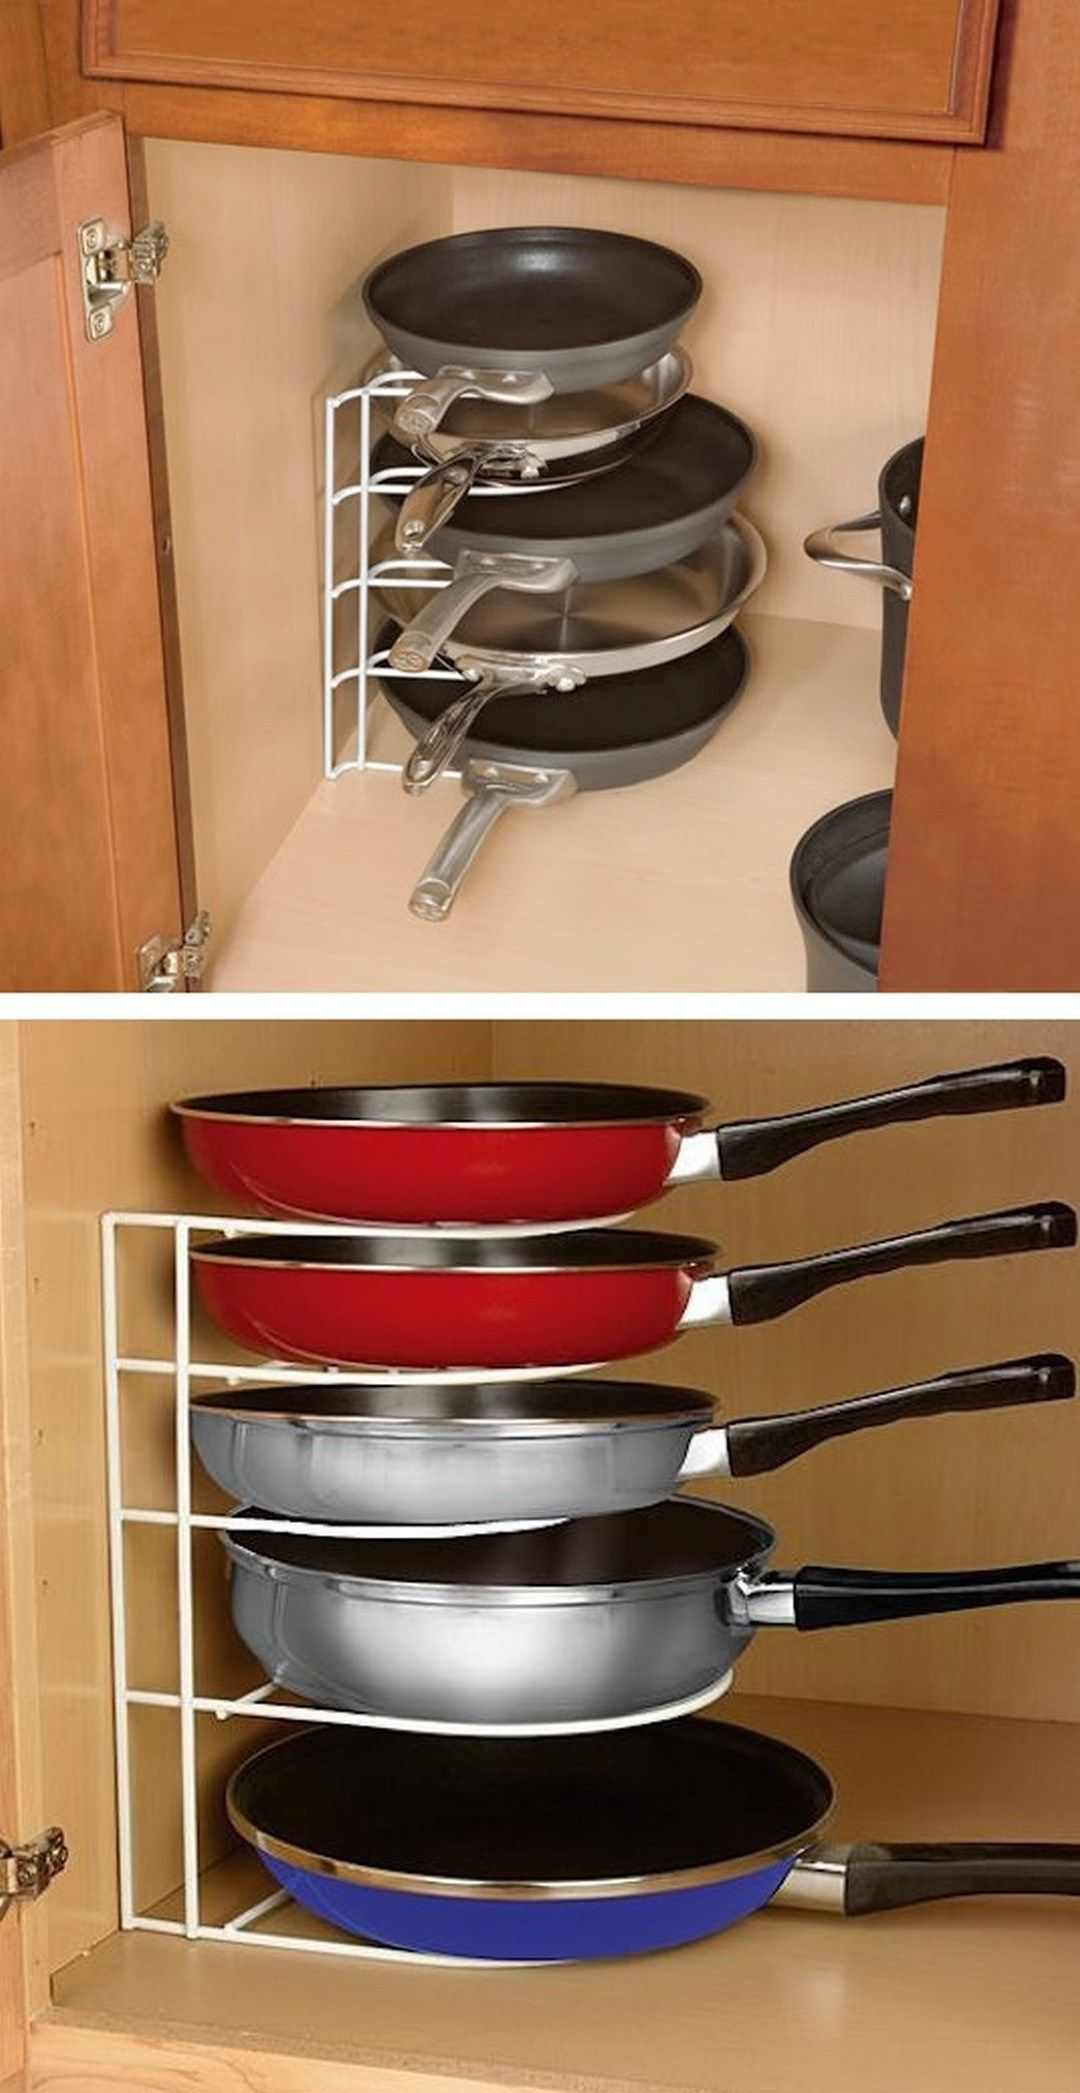 20 Diy Kitchen Organization And Storage Hacks Ideas (9)